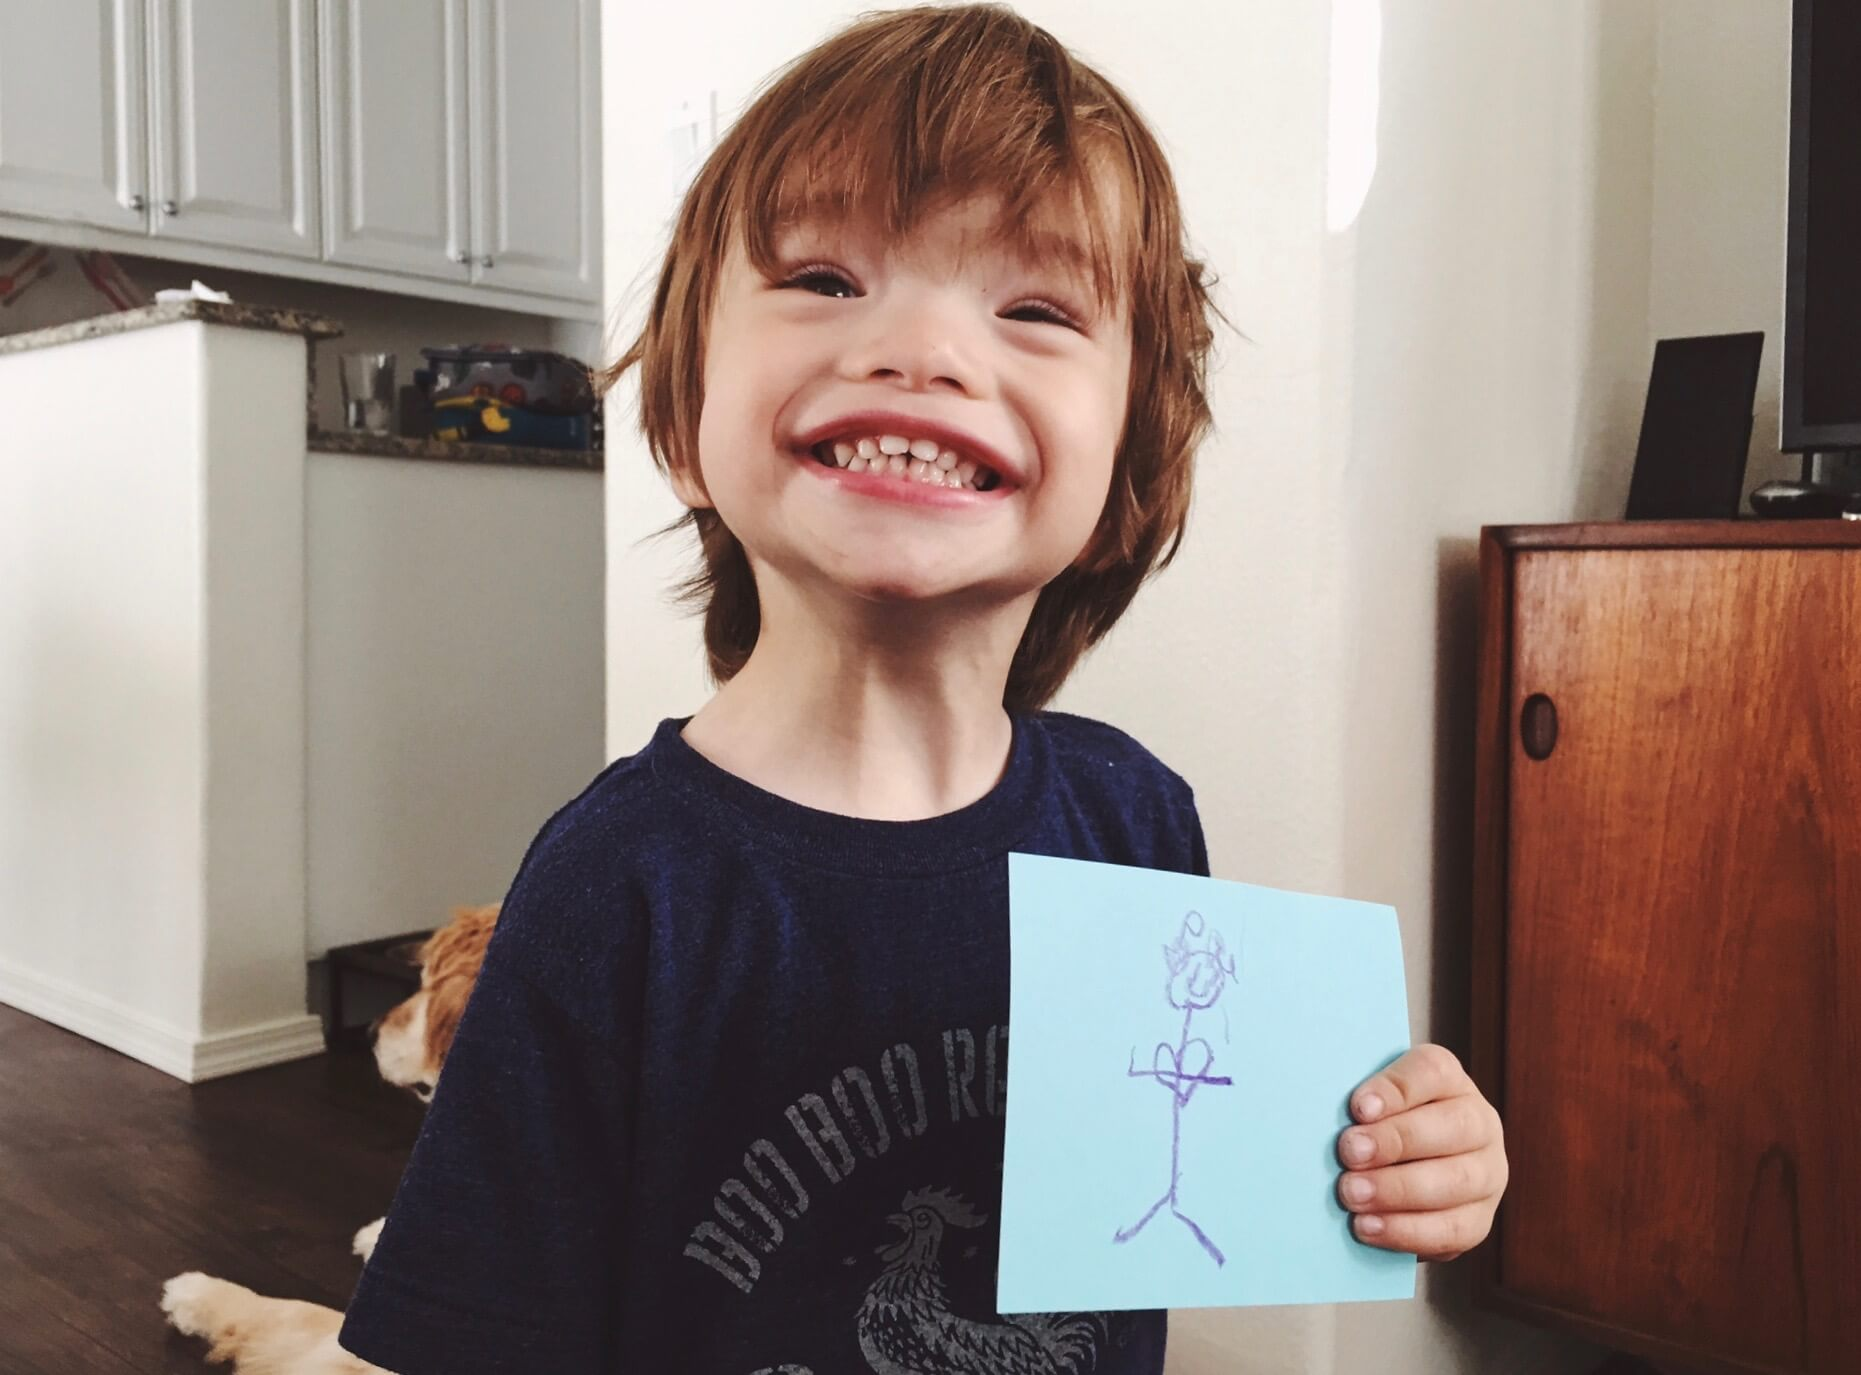 Little boy holding up artwork and smiling proudly